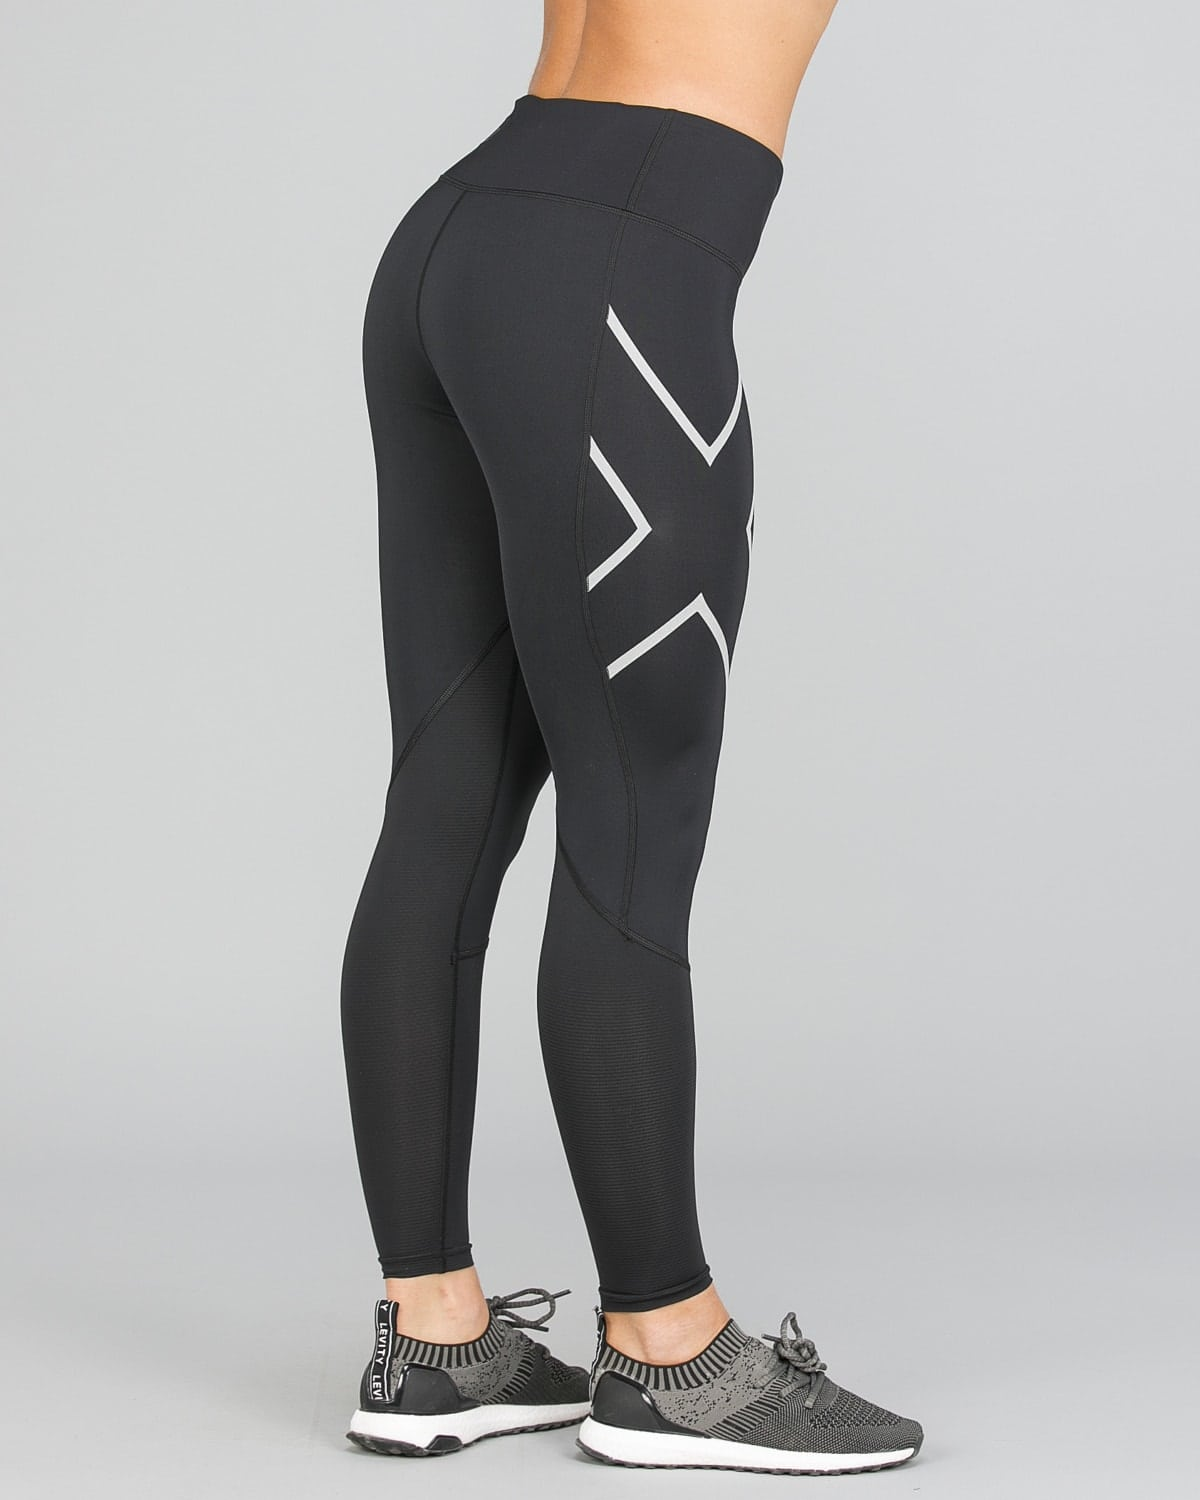 2XU Run Mid-Rise Dash Comp Tights Women – Black:Silver Reflective8